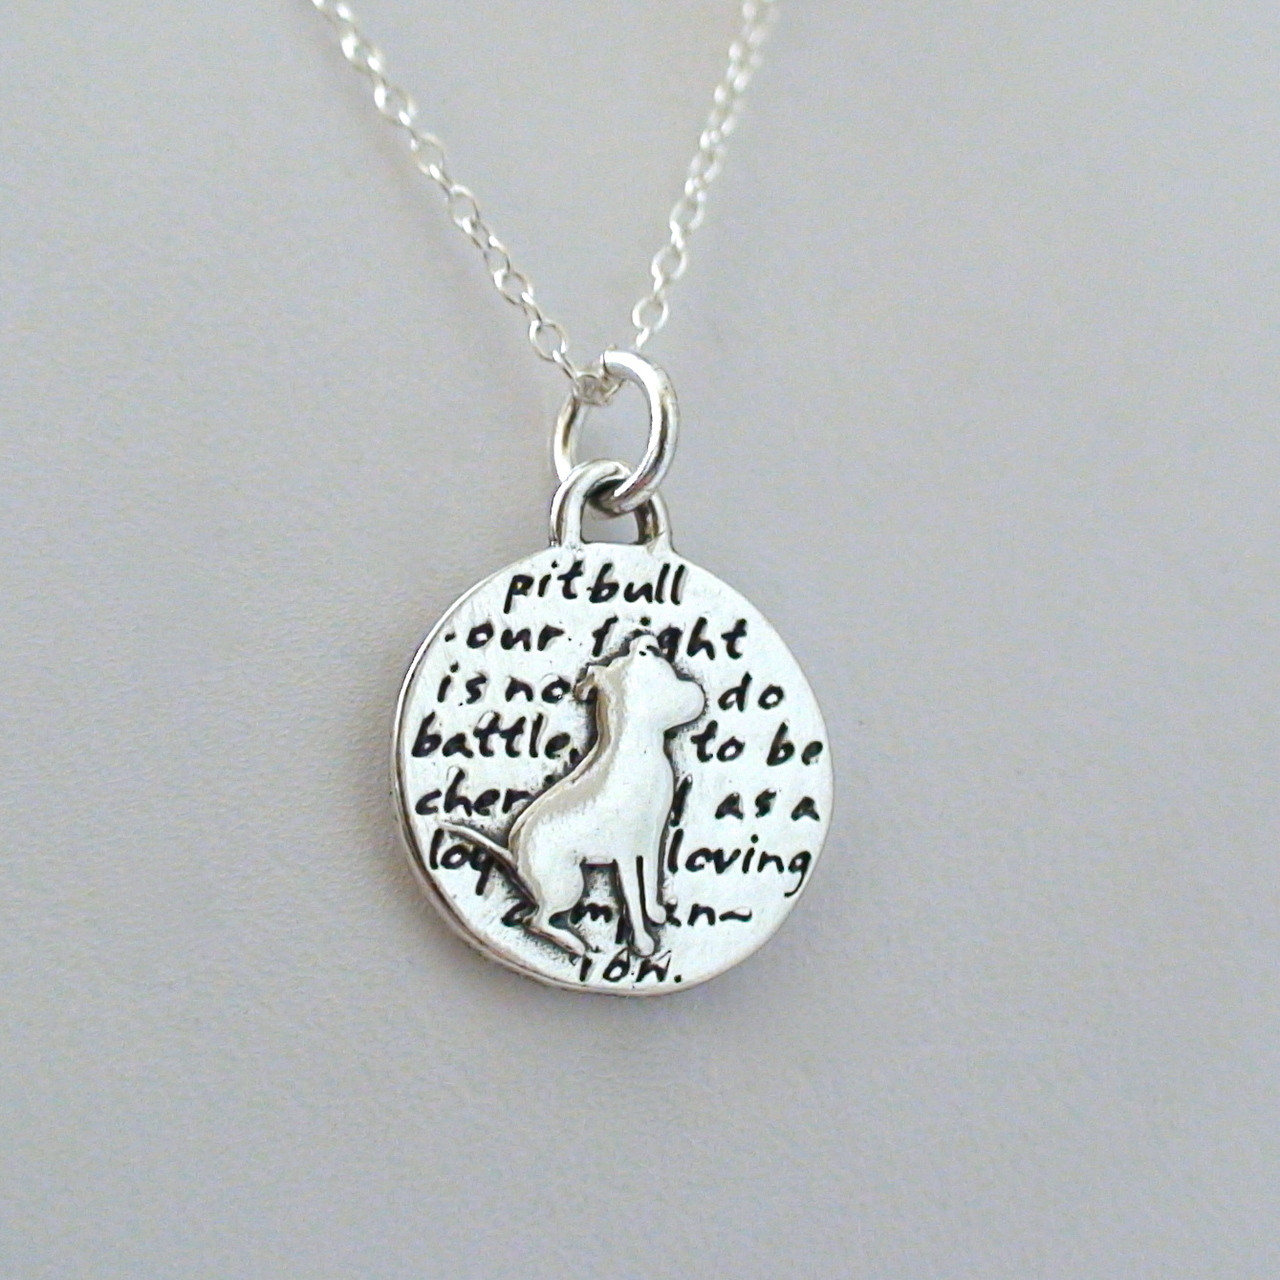 Sterling silver pit bull necklace fashionjunkie4life sterling silver pit bull charm necklace aloadofball Choice Image